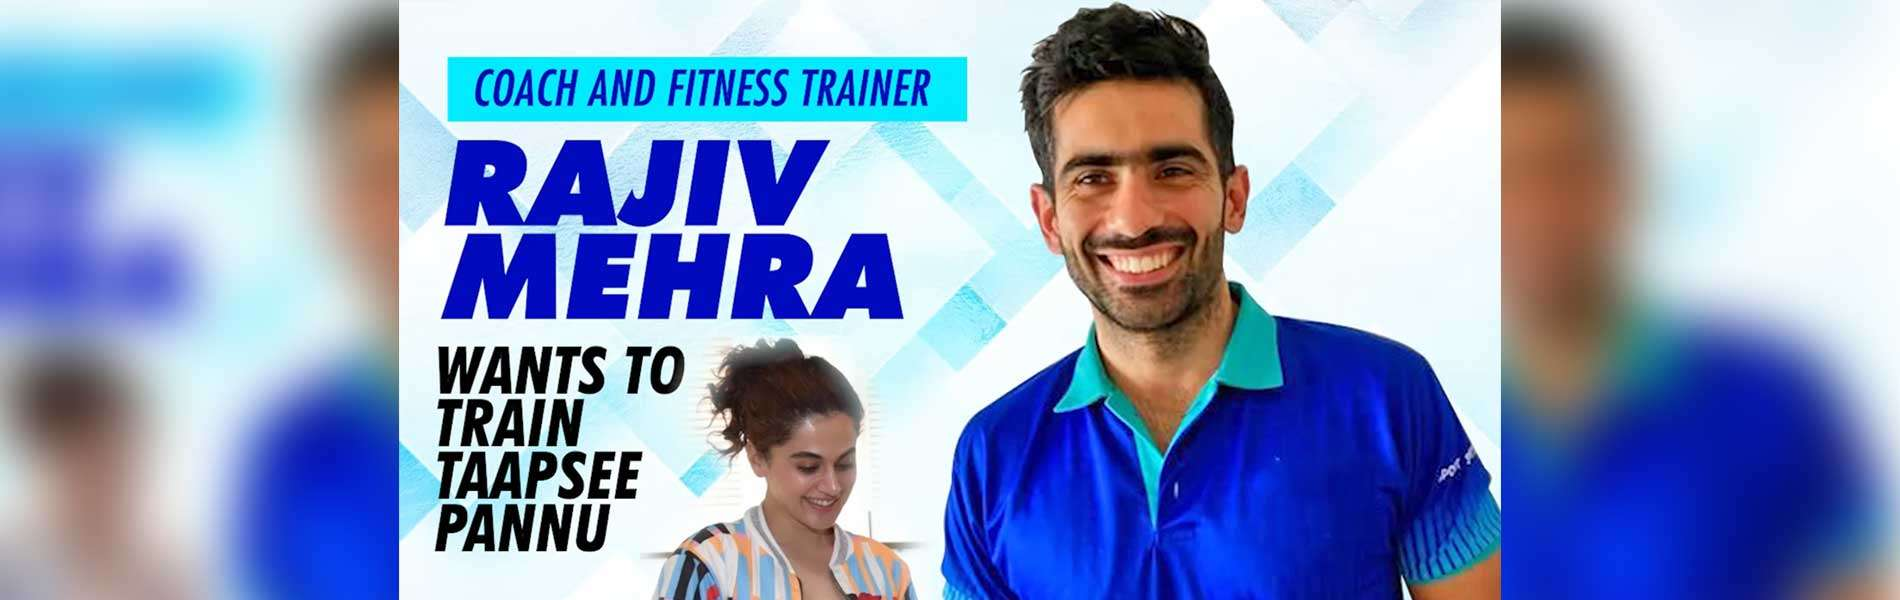 coach-and-fitness-trainer-rajiv-mehra-wants-to-train-taapsee-pannu